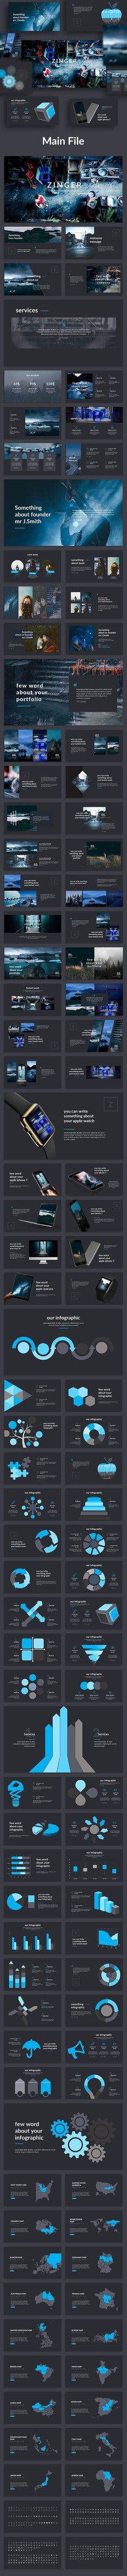 Zinger Creative Keynote Template — Keynote KEY #start up #enterprise • Download ➝ https://graphicriver.net/item/zinger-creative-keynote-template/19676348?ref=pxcr